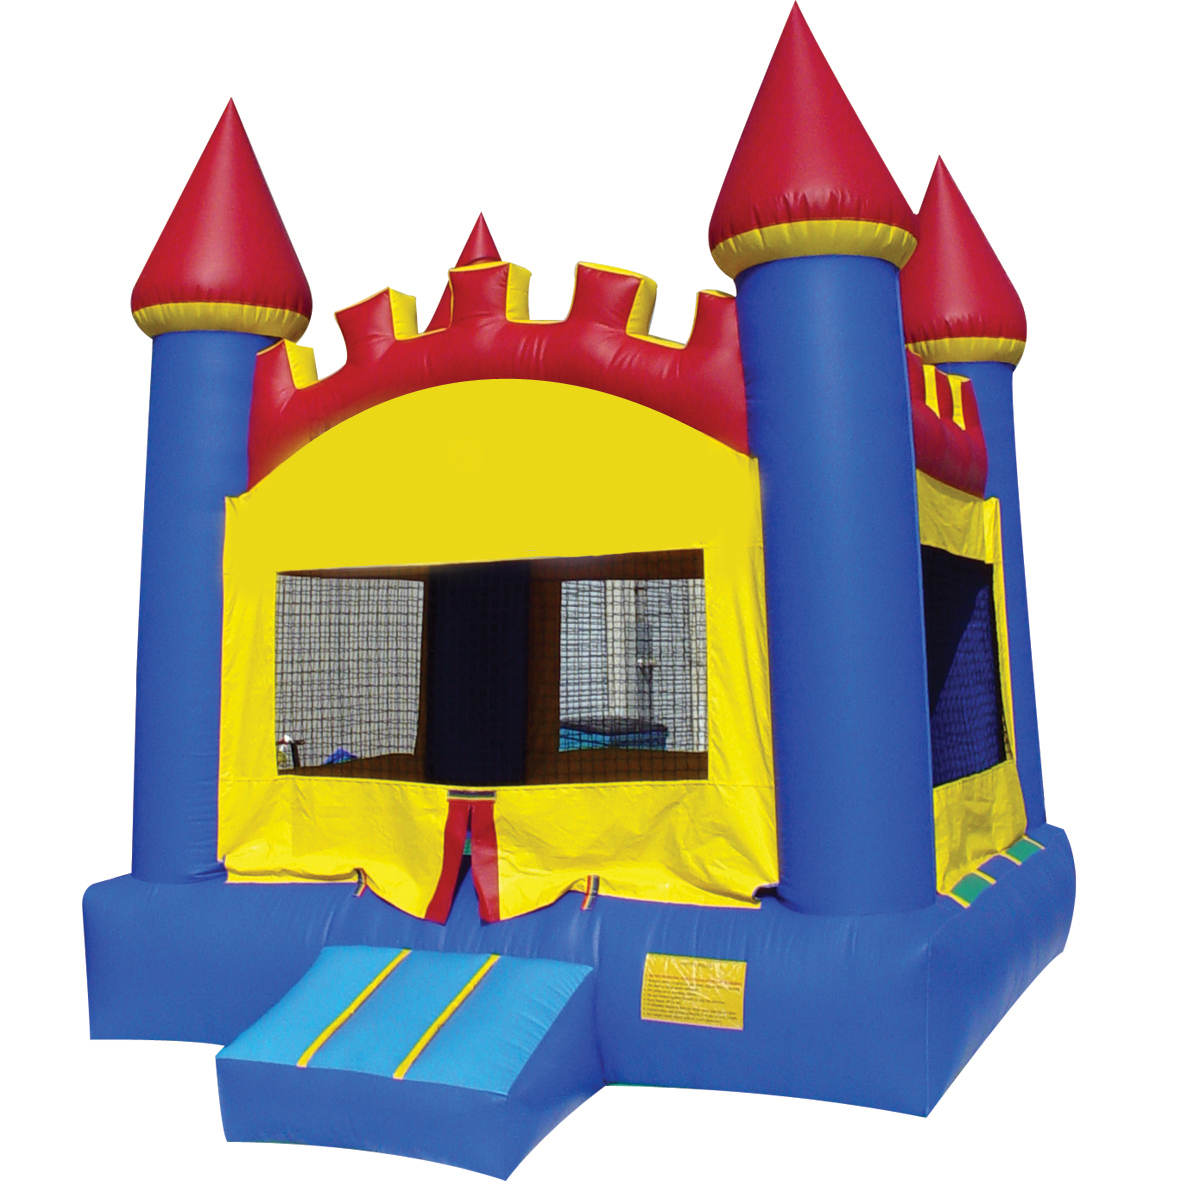 free bounce house clipart - photo #43